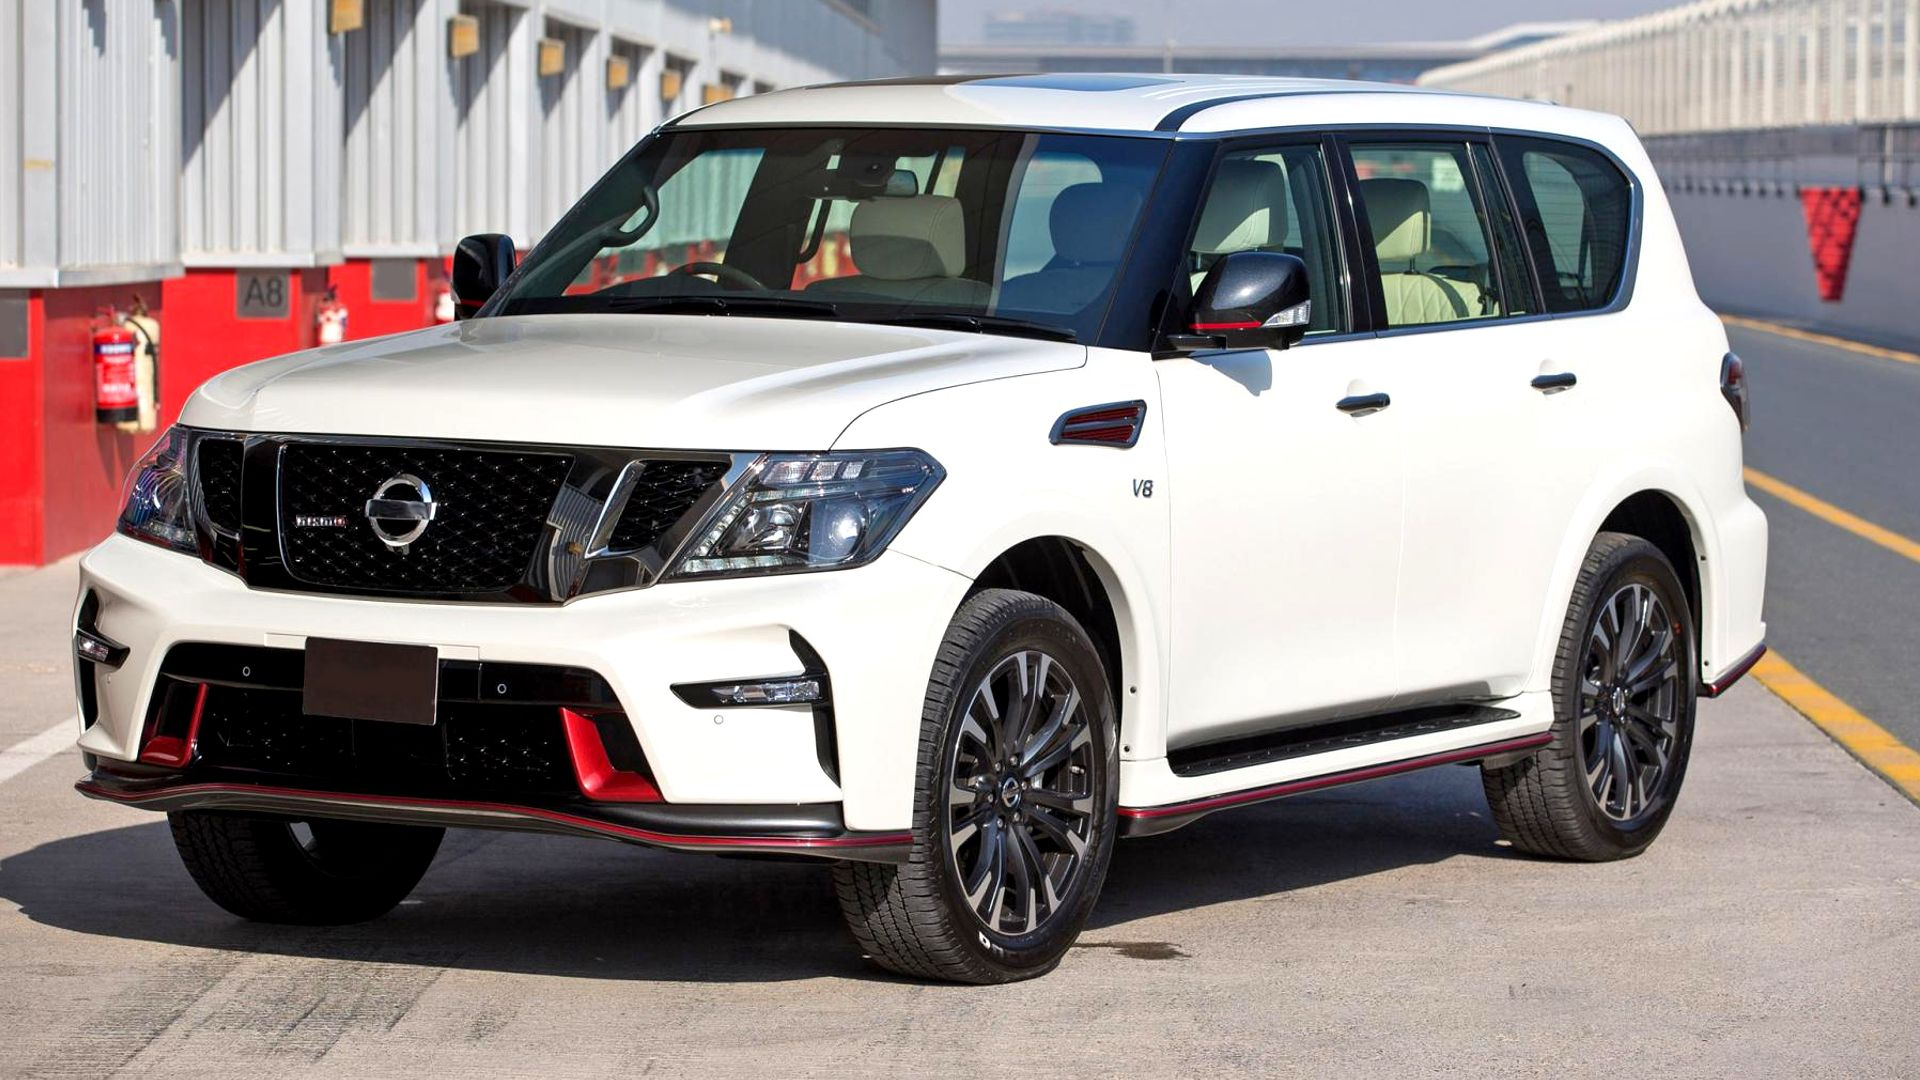 2019 Nissan Armada First Pictures | Nissan, Car, Lexus lx570